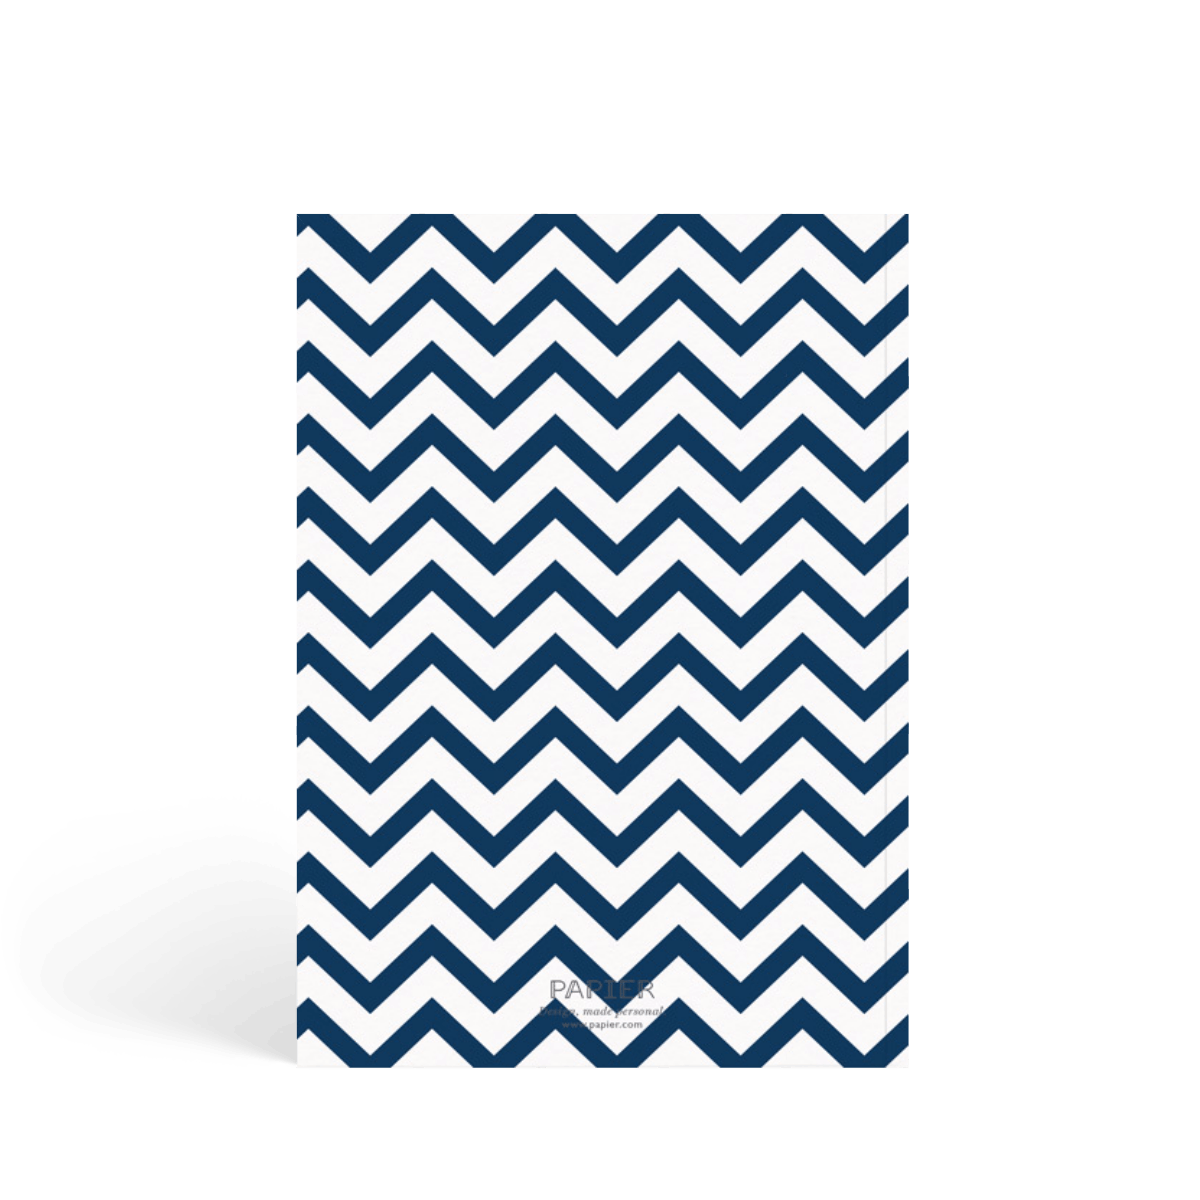 Https%3a%2f%2fwww.papier.com%2fproduct image%2f29947%2f5%2fnavy chevrons 7551 back 1508839817.png?ixlib=rb 1.1